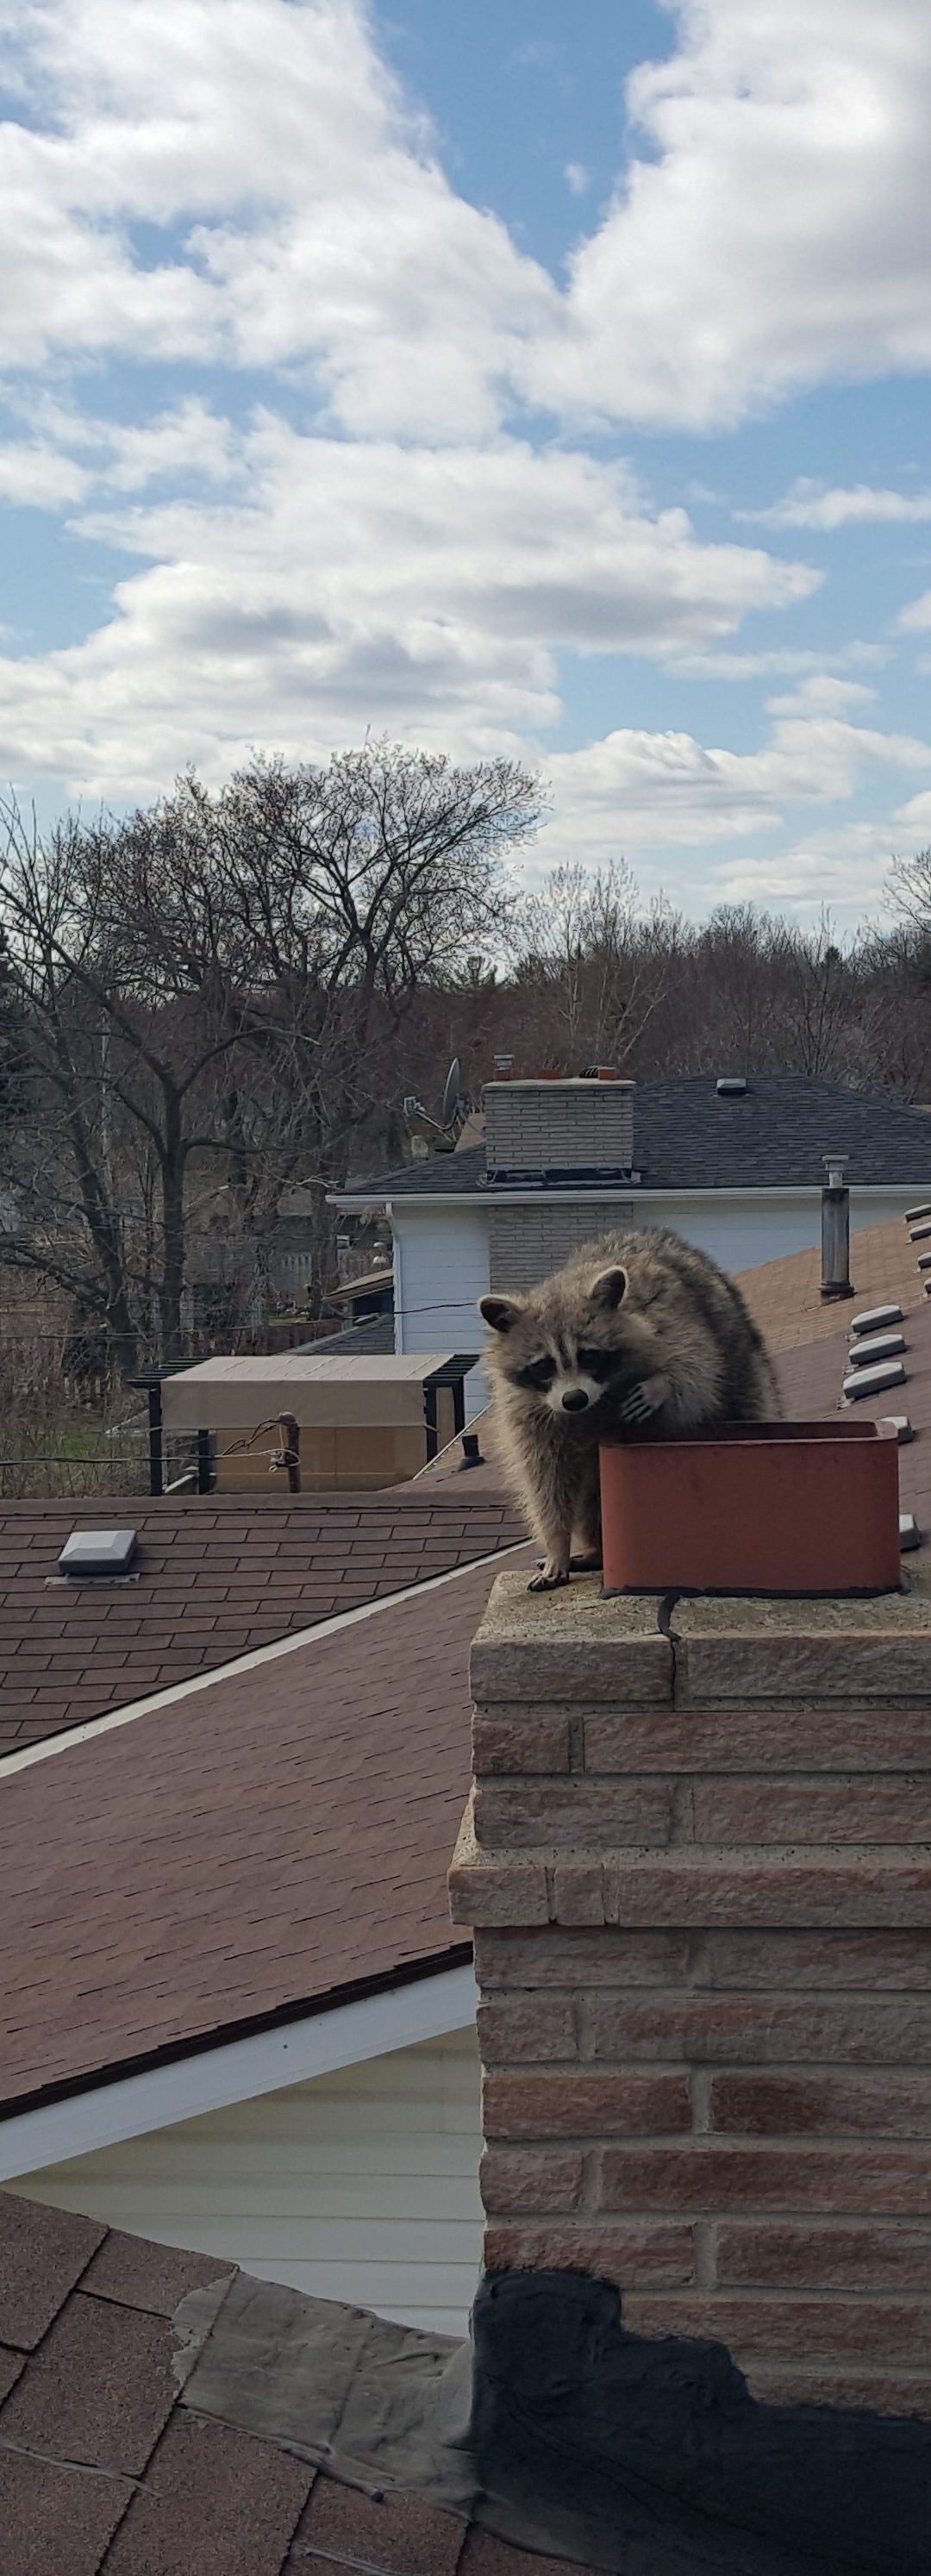 How to Deal With Raccoons in Your Chimney